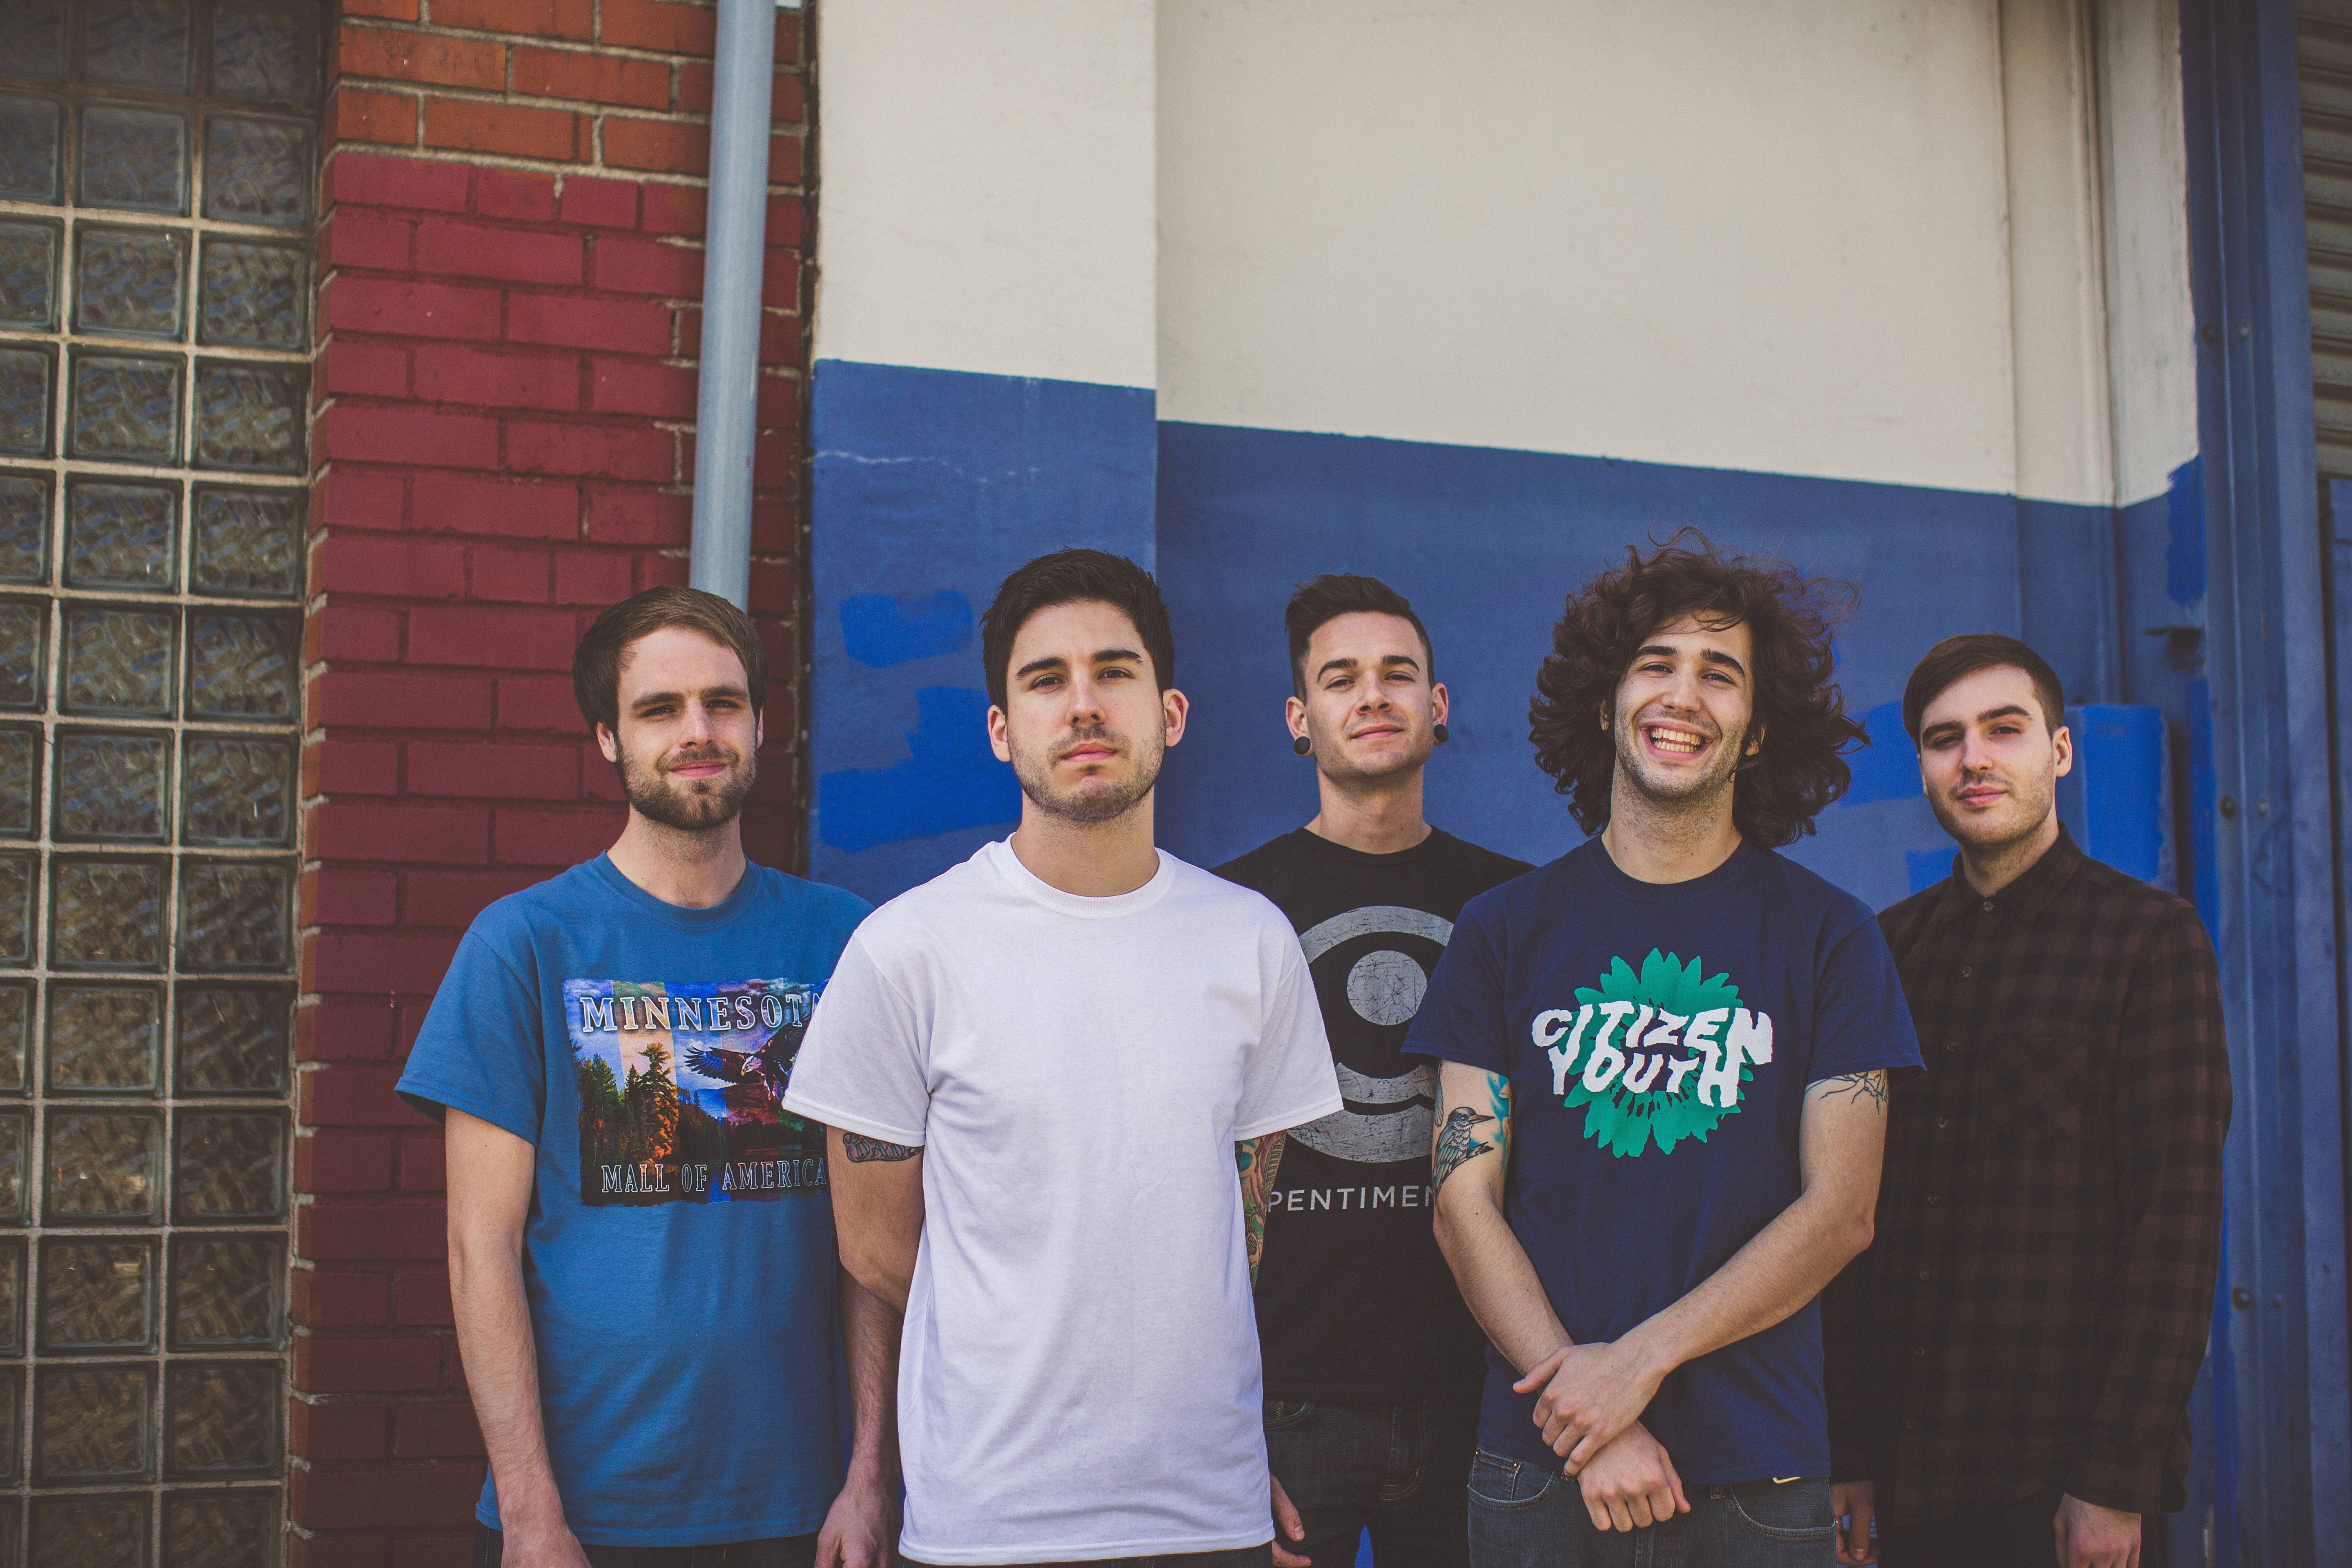 Chicago band Real Friends is part of this year's Warped Tour event in the South suburbs.